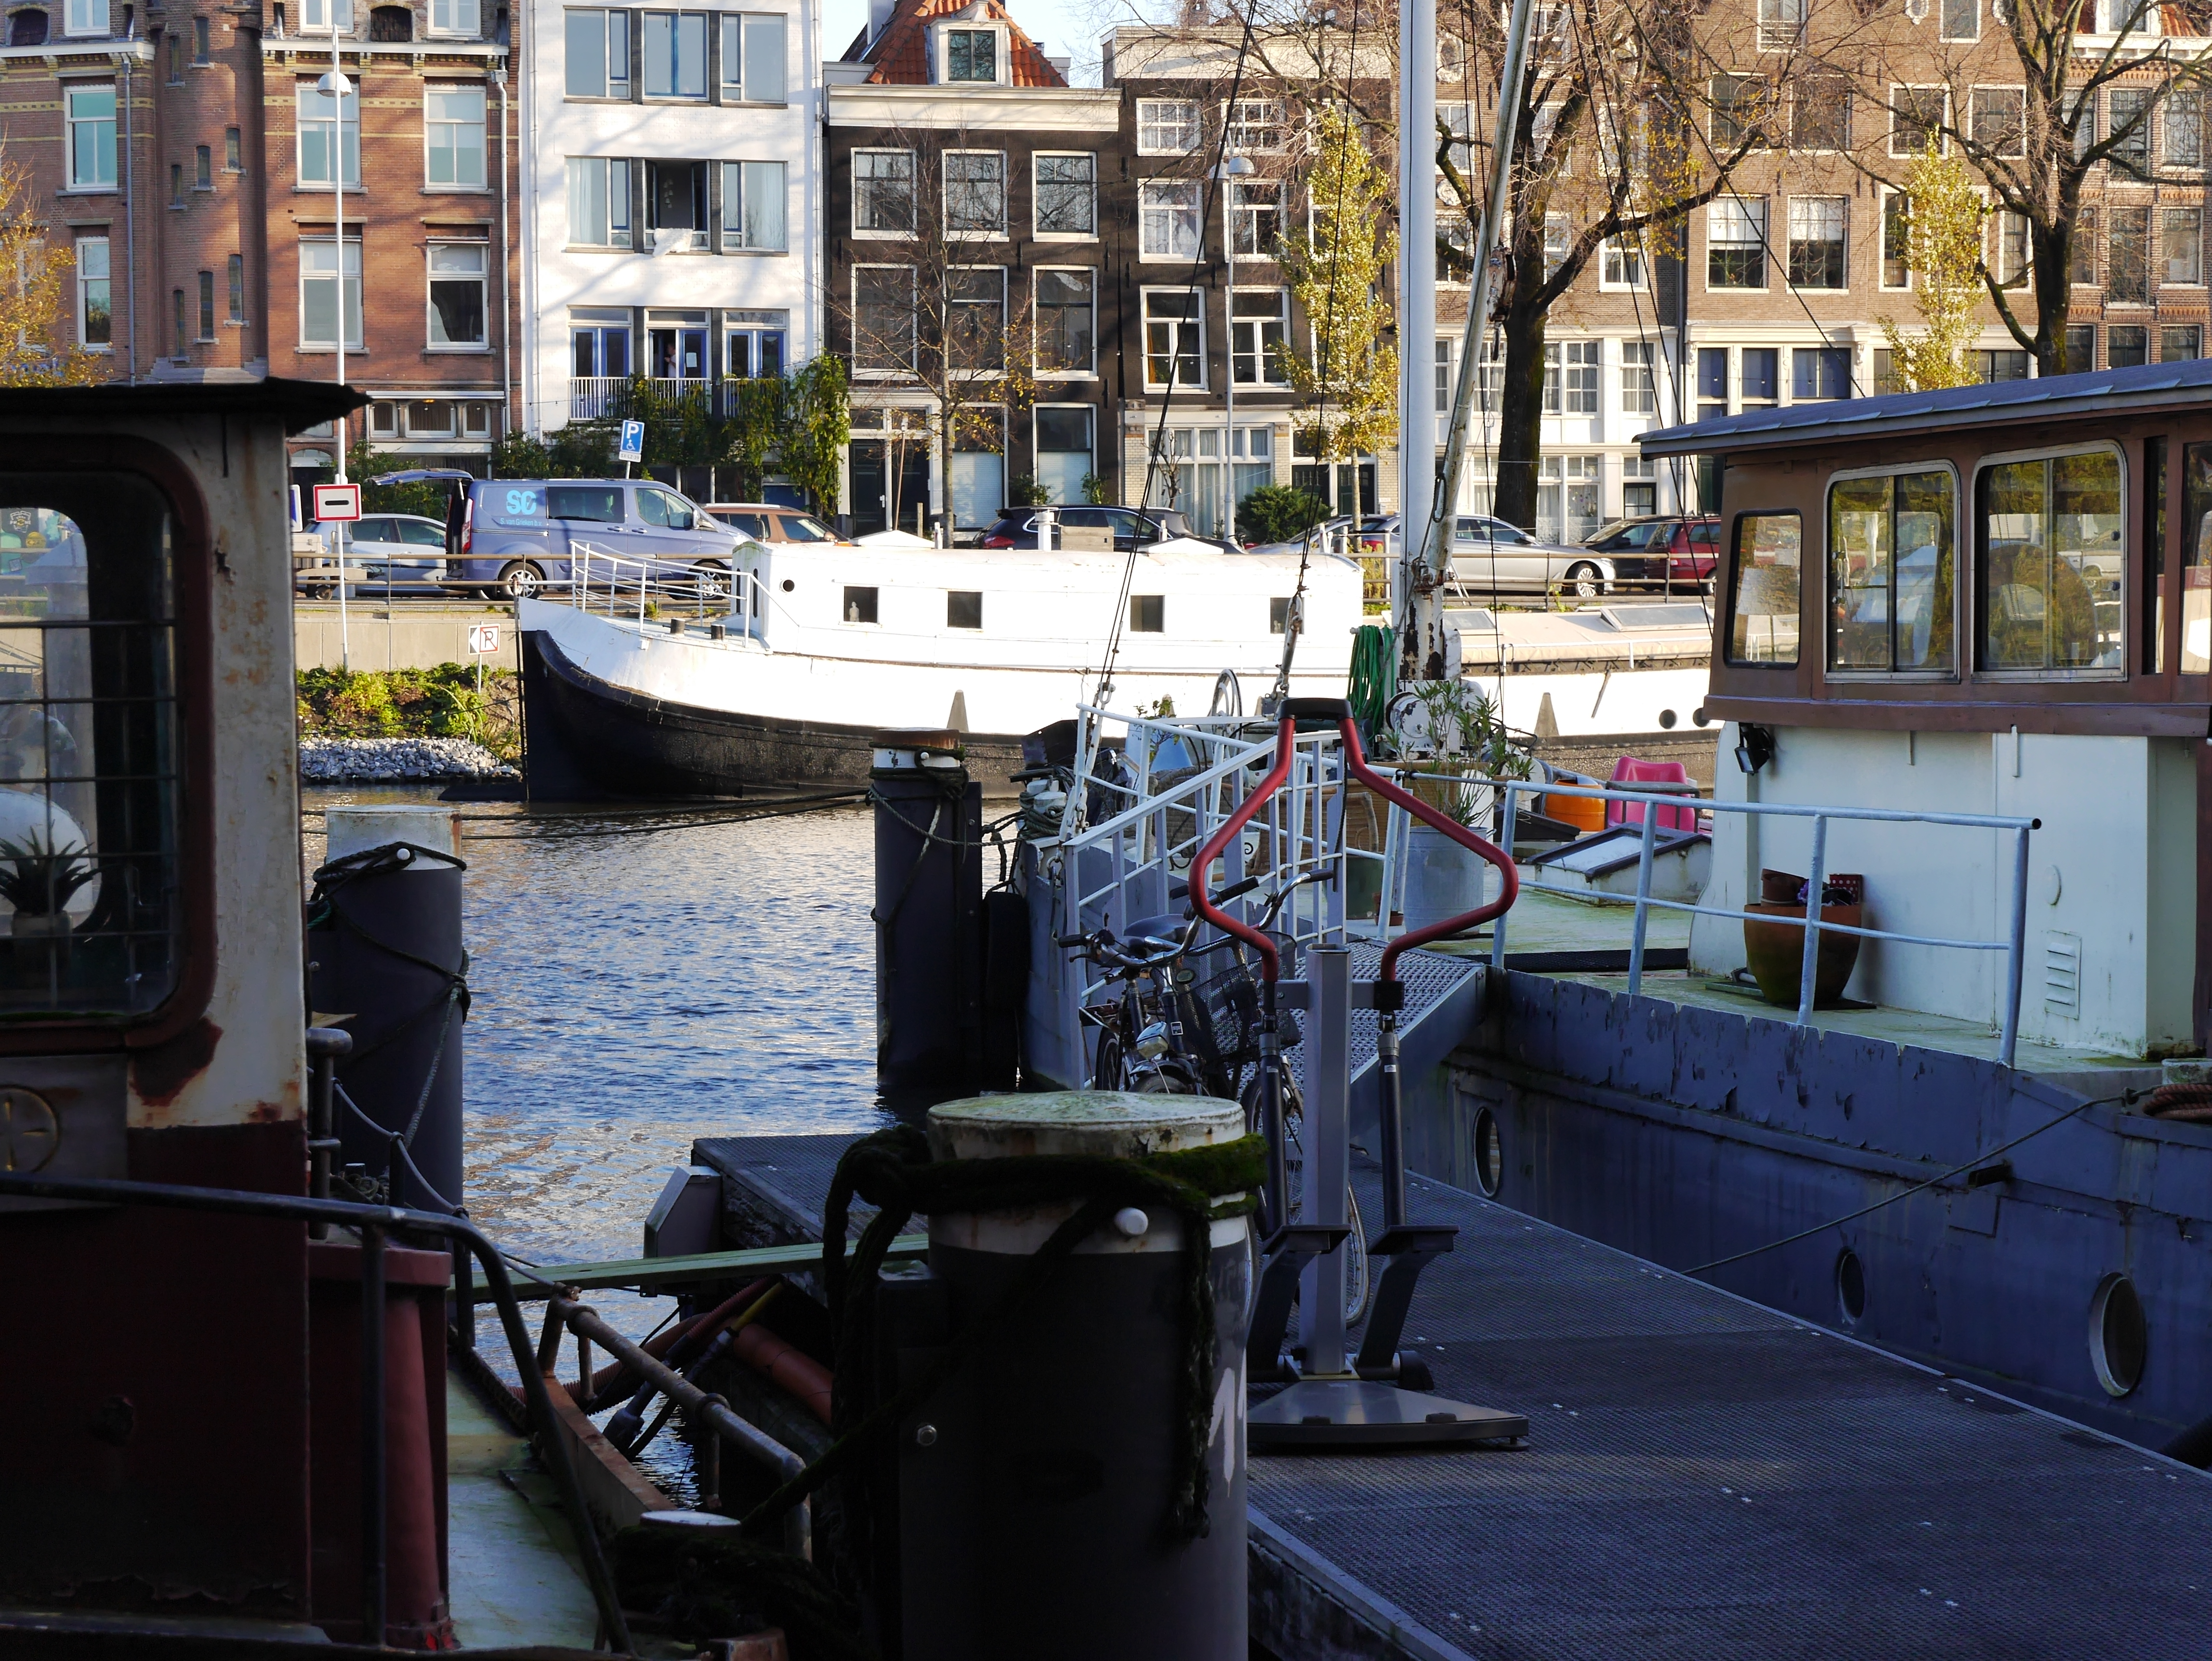 Old houseboats in the canal water of Amsterdam city, Old houseboats in the canal water of Amsterdam city